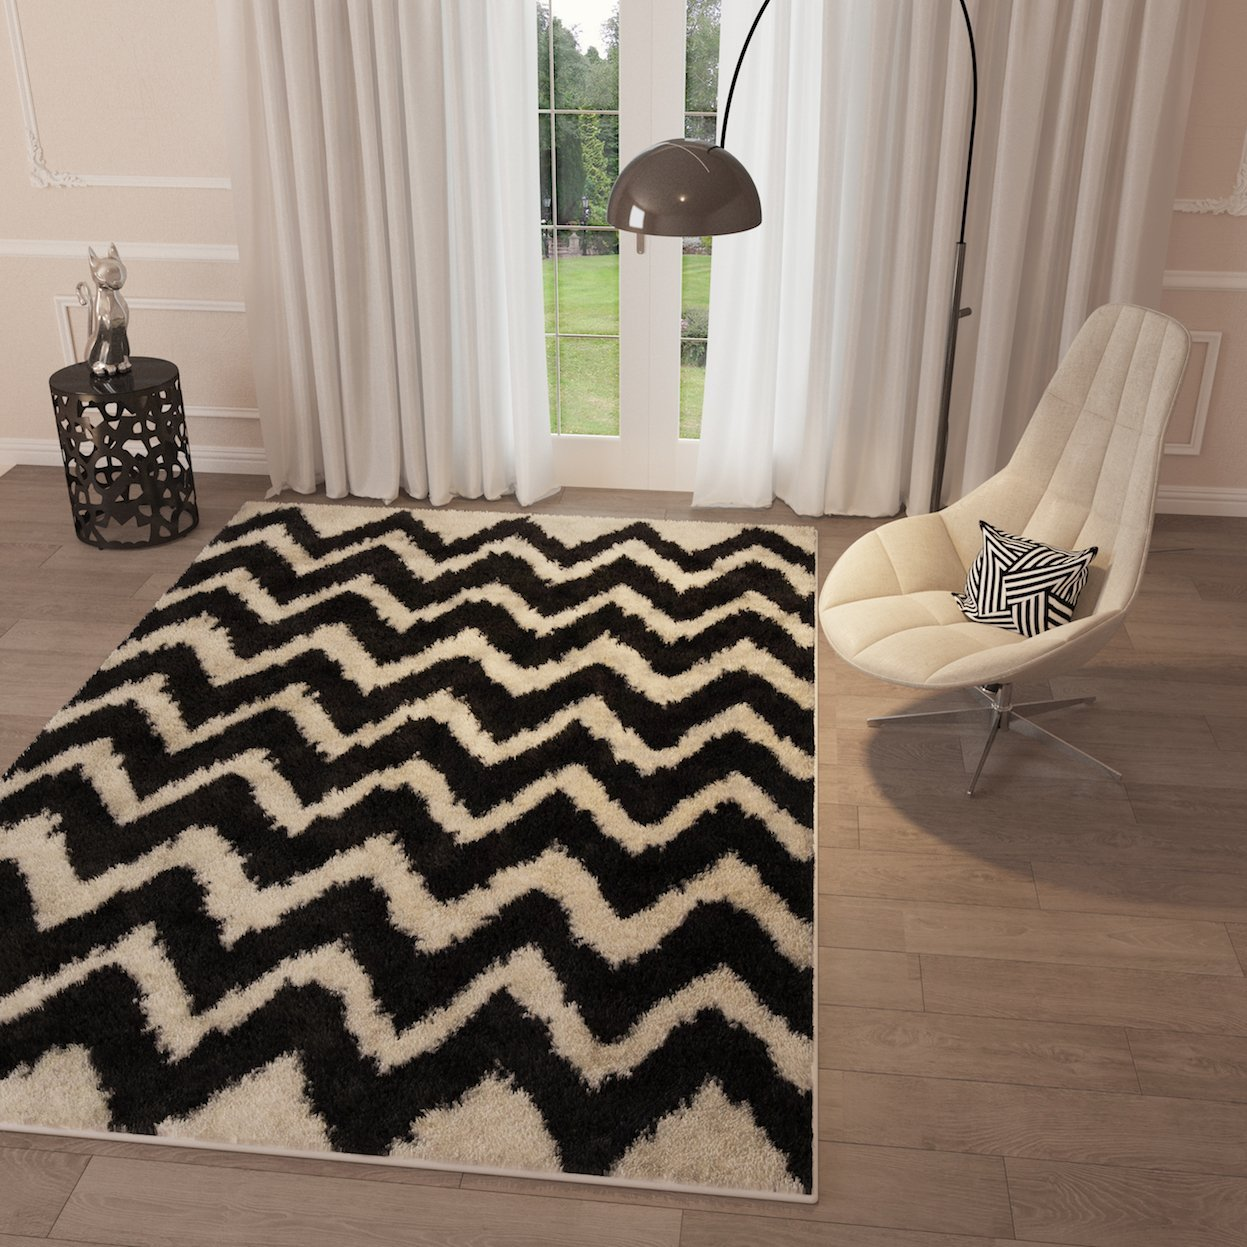 caac6c1259a Get Quotations · Black Chevron Zig Zag Shag Area Rug 20   x 7 2